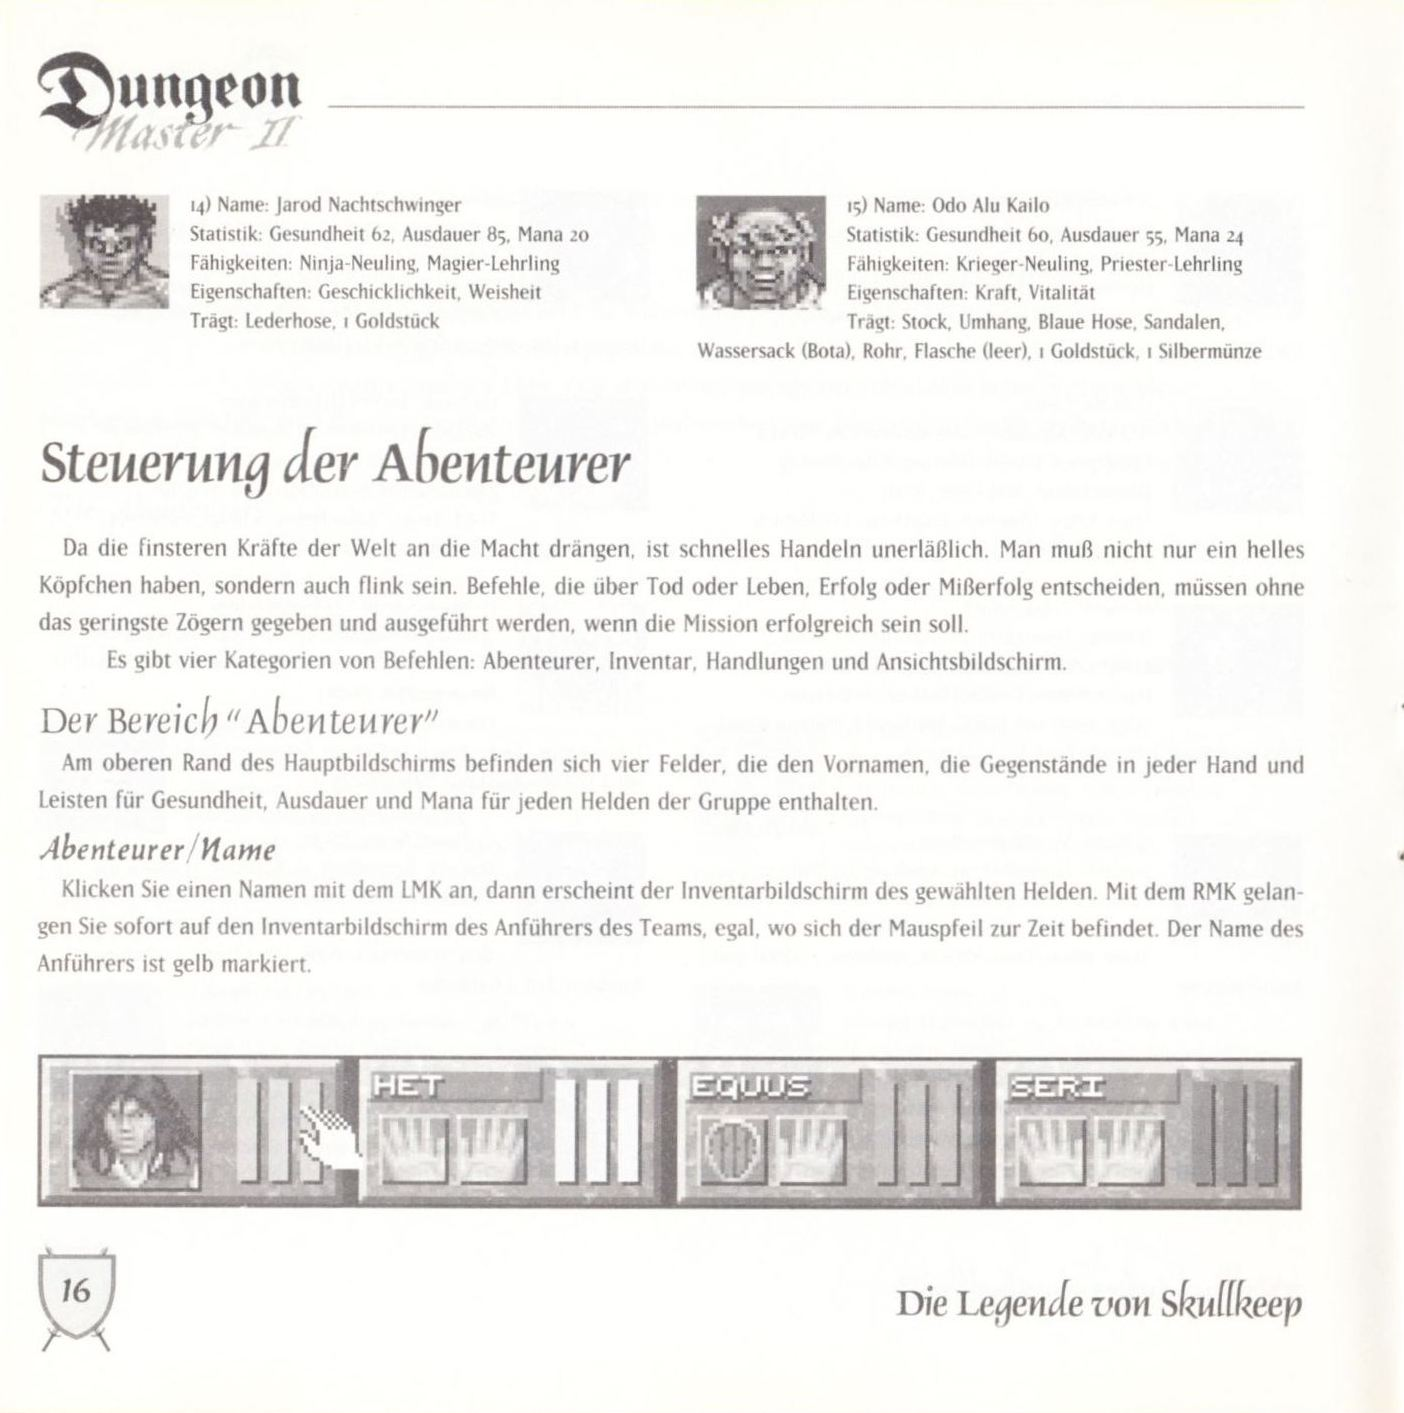 Game - Dungeon Master II - DE - PC - Blackmarket With Booklet - Booklet - Page 018 - Scan